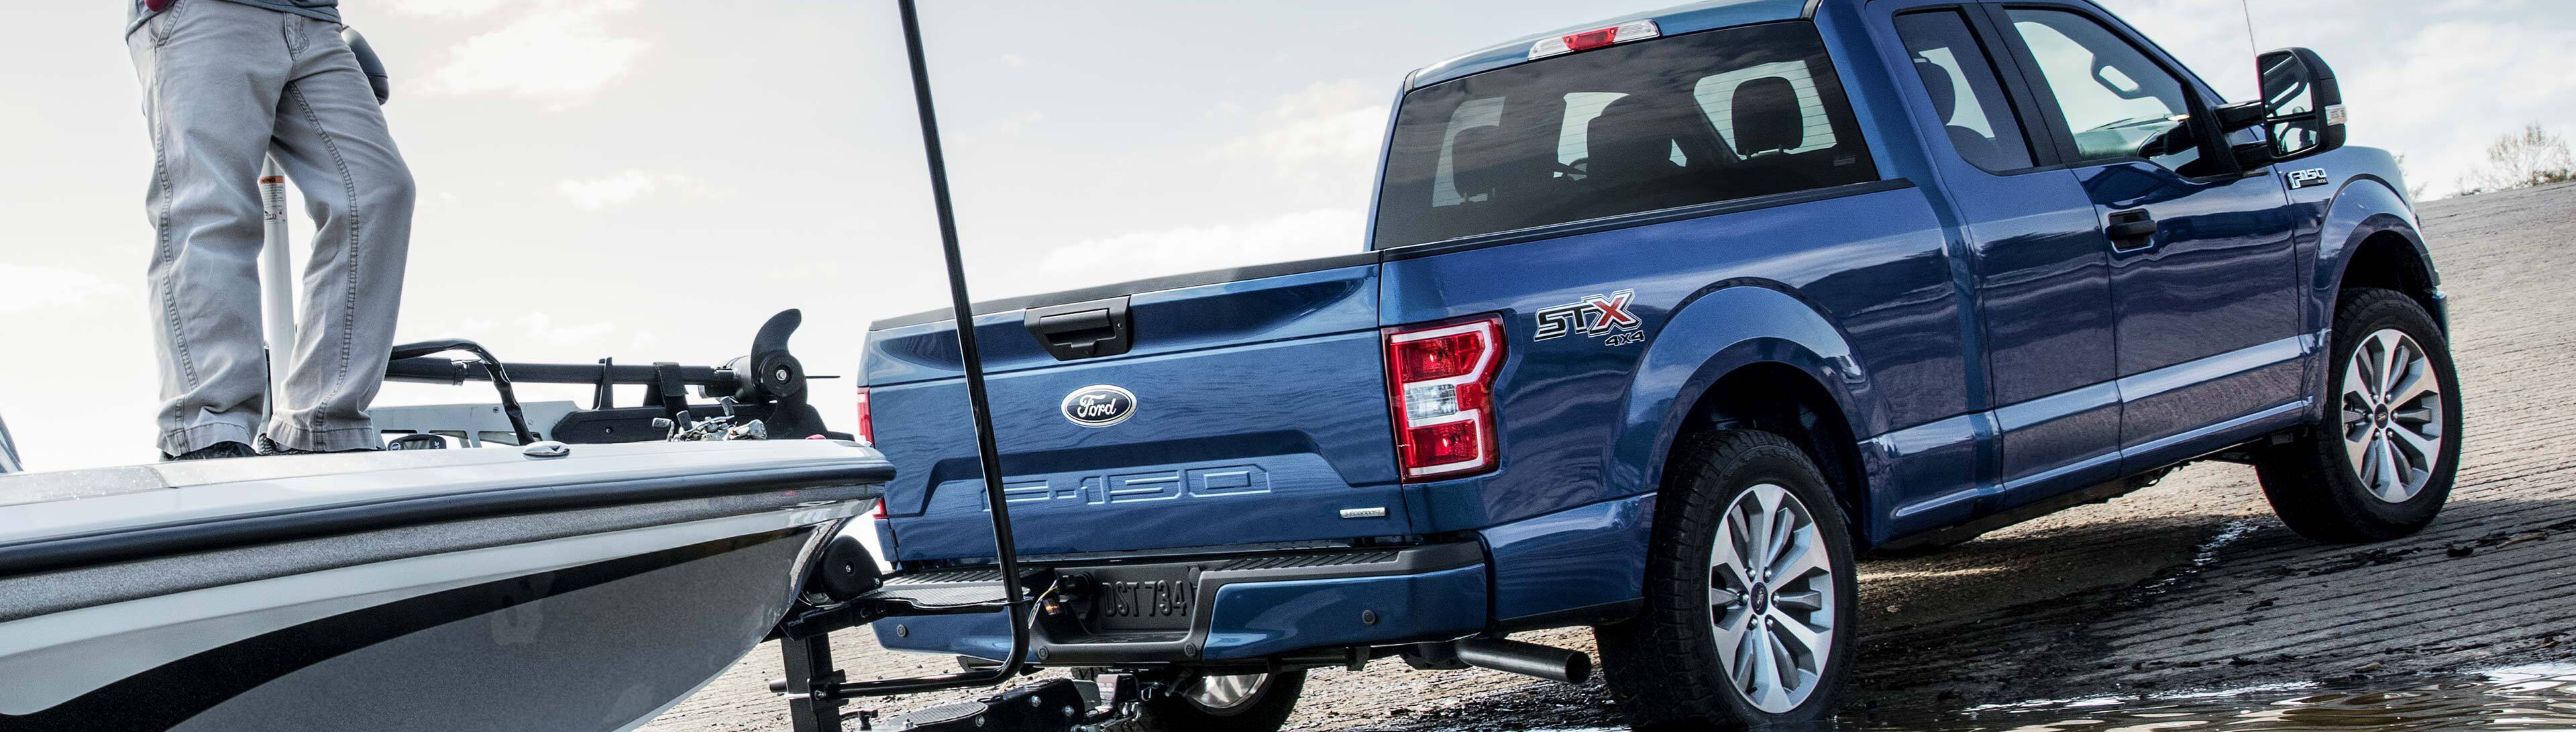 blue 2019 ford f-150 stx 4x4 towing a boat